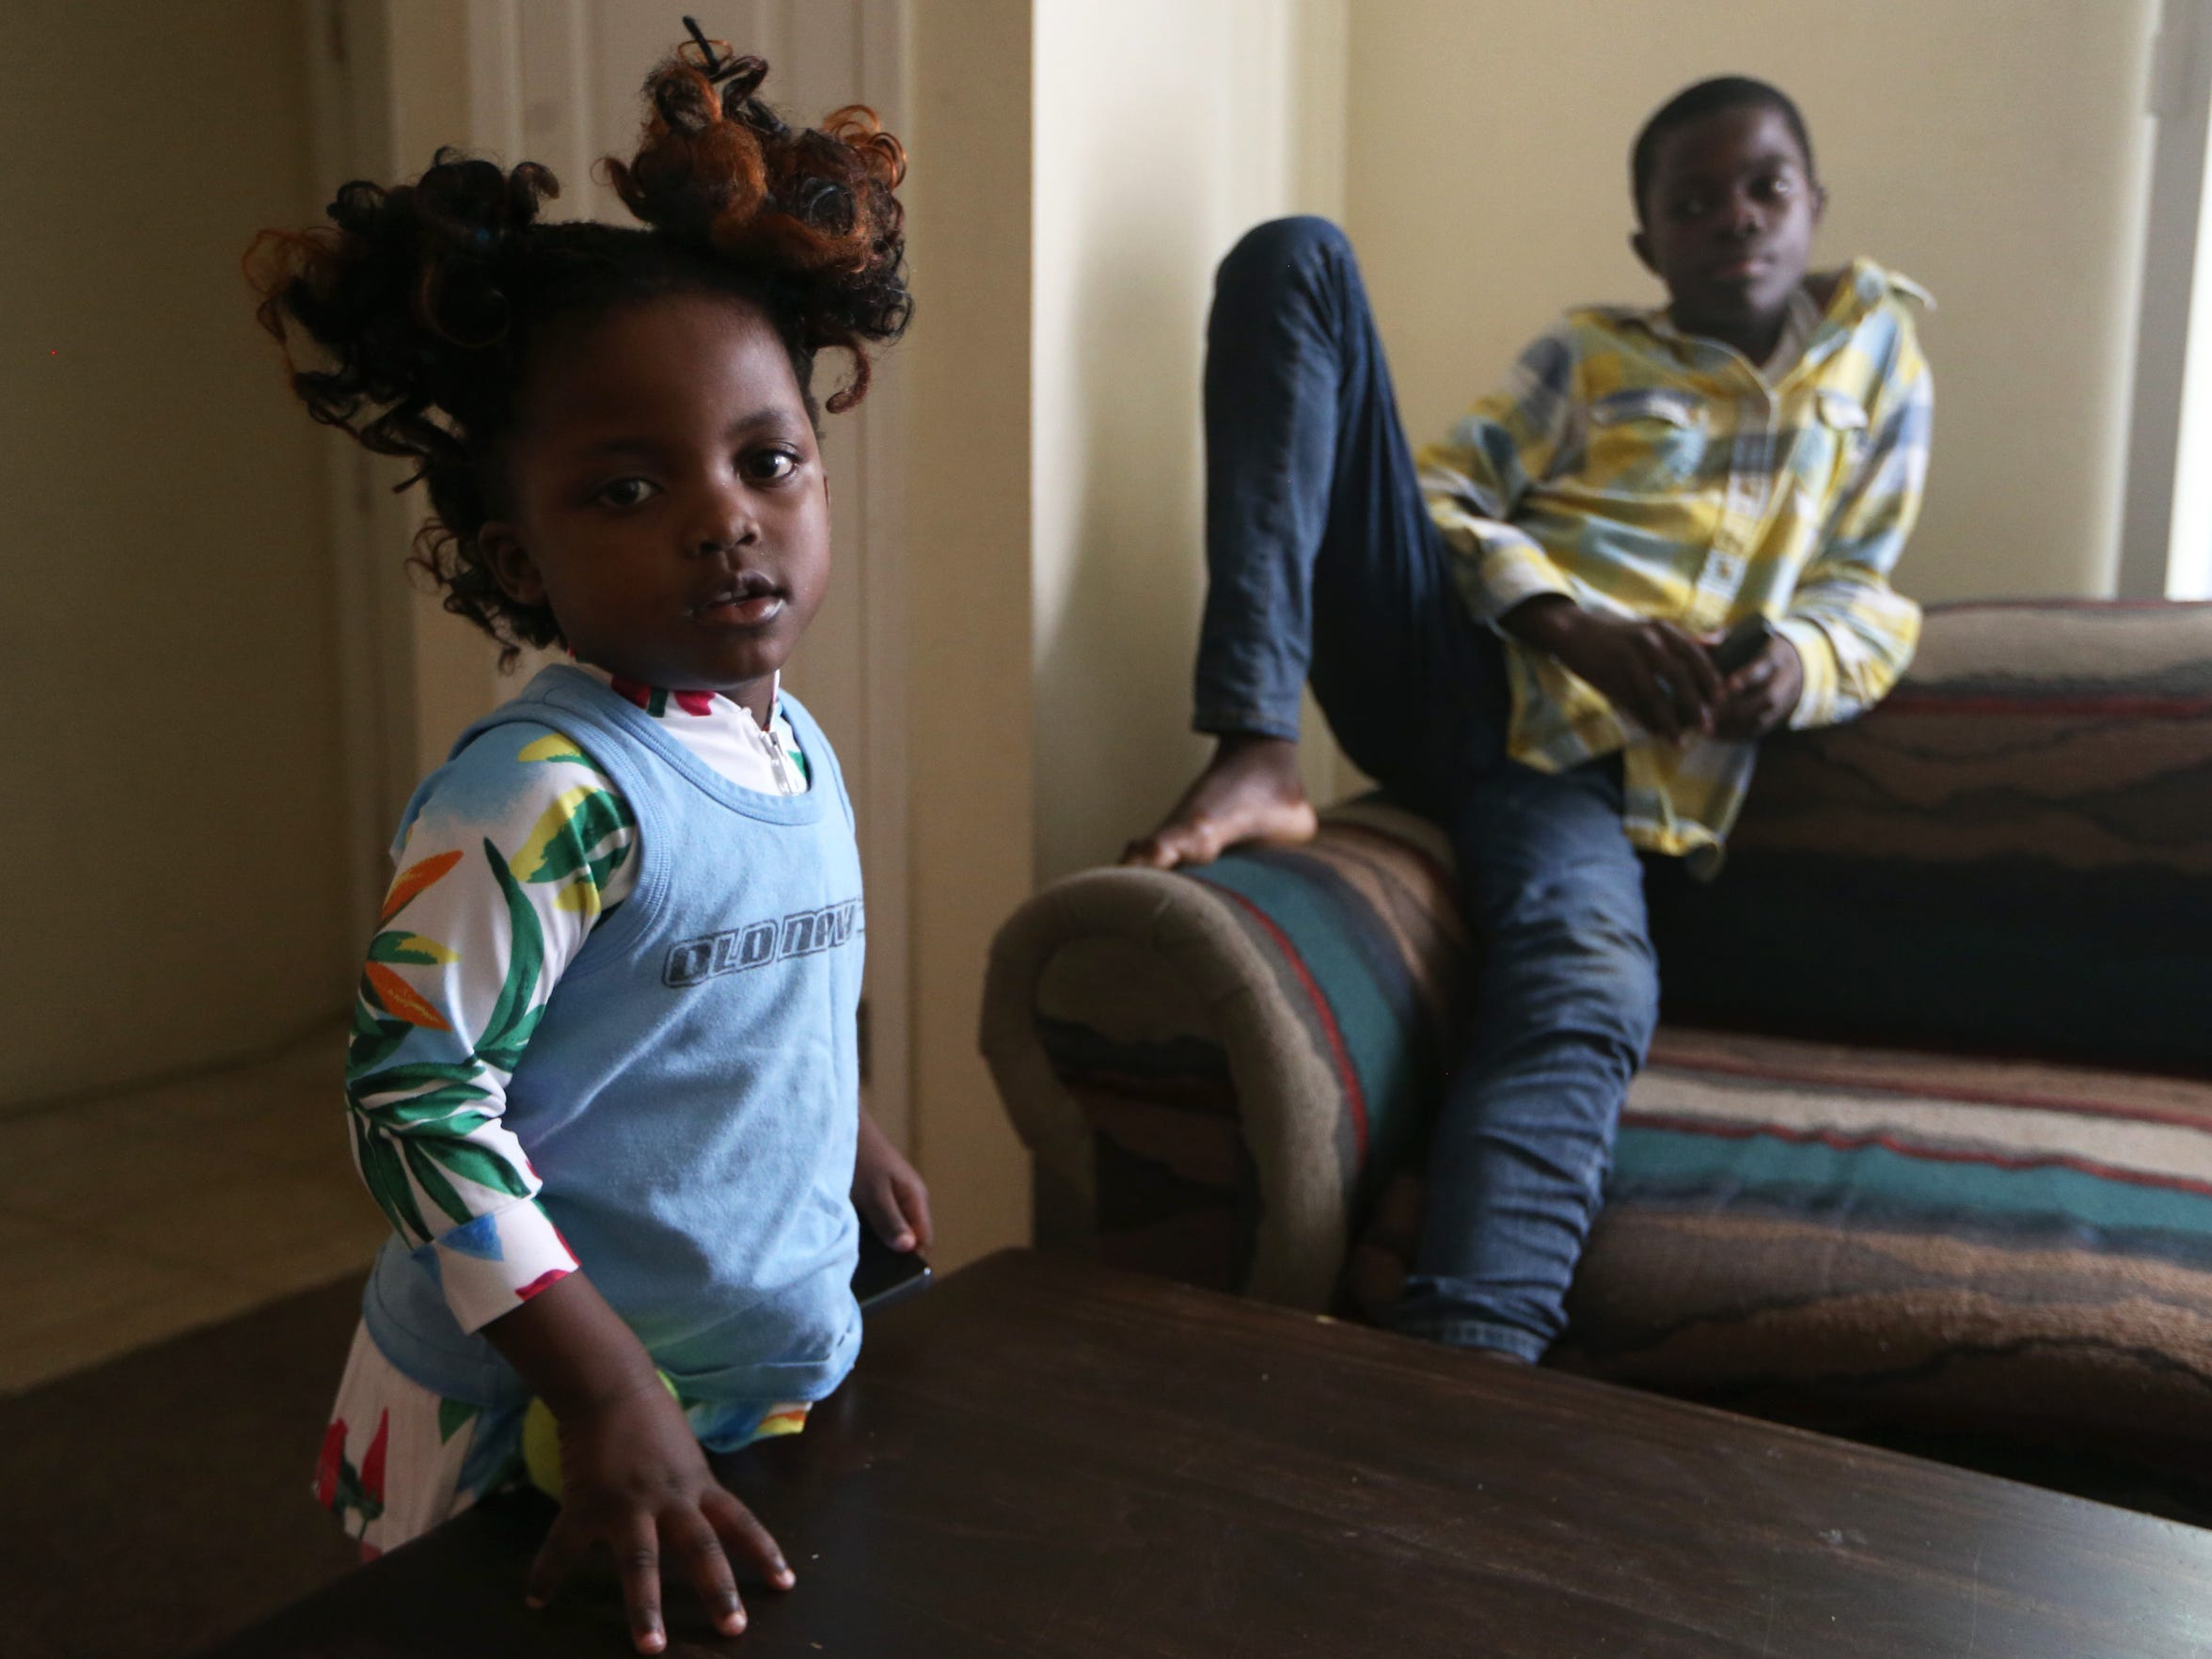 Magi, 4, and James Mambo, 14, in the family's living room in Tallahassee, just a month after they were relocated, receiving refugee status after fleeing the Democratic Republic of the Congo.